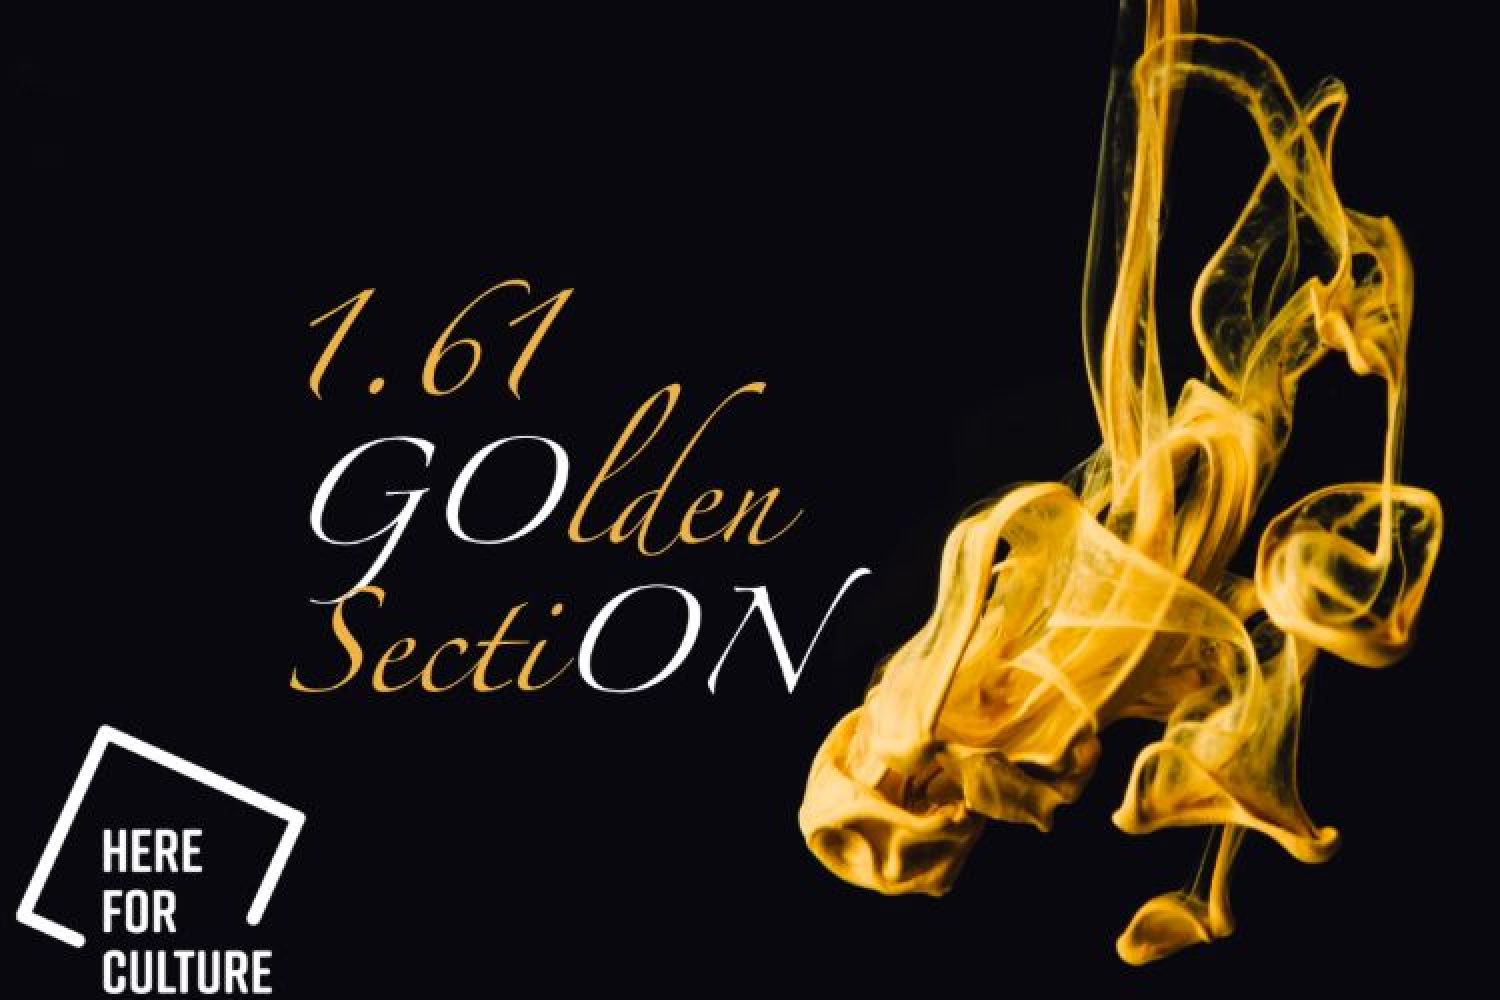 1.61 GOlden SectiON: la video-danza è online ogni sera